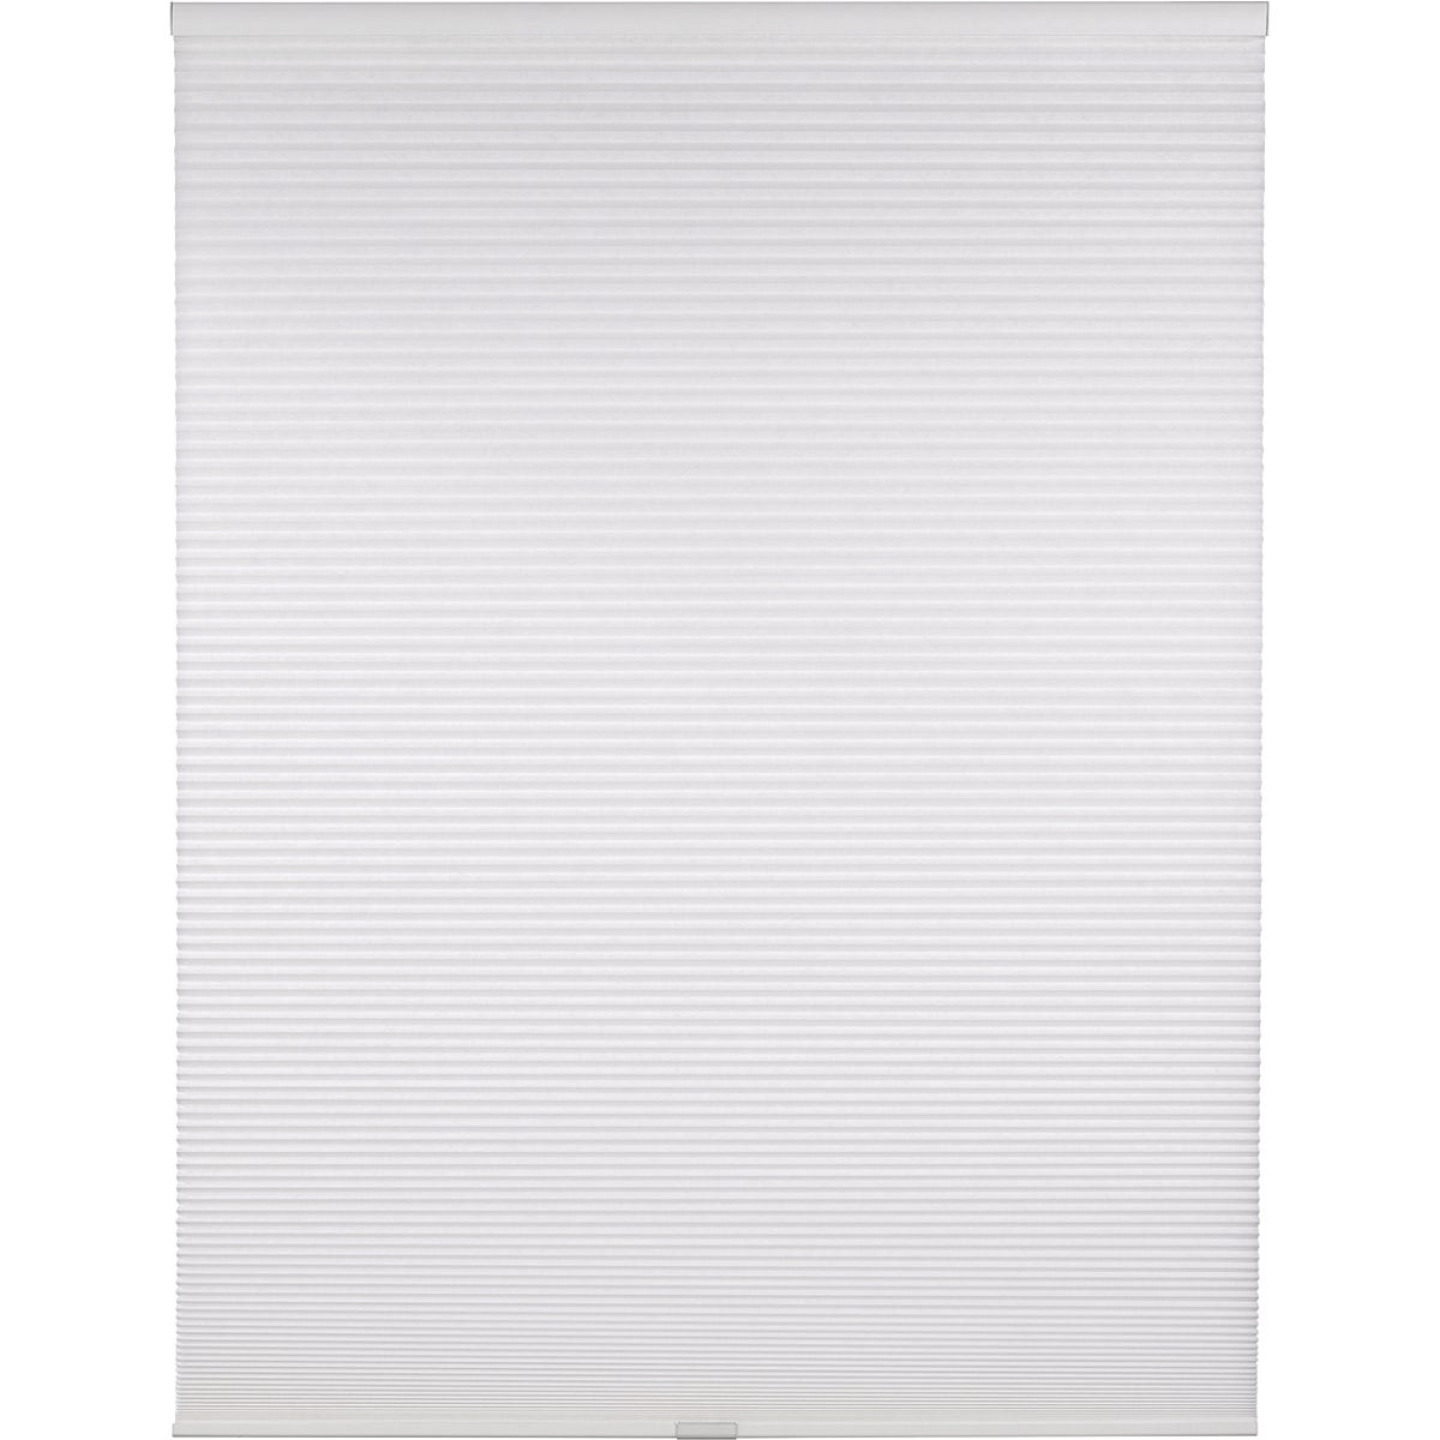 Home Impressions 1 In. Light Filtering Cellular White 48 In. x 72 In. Cordless Shade Image 1